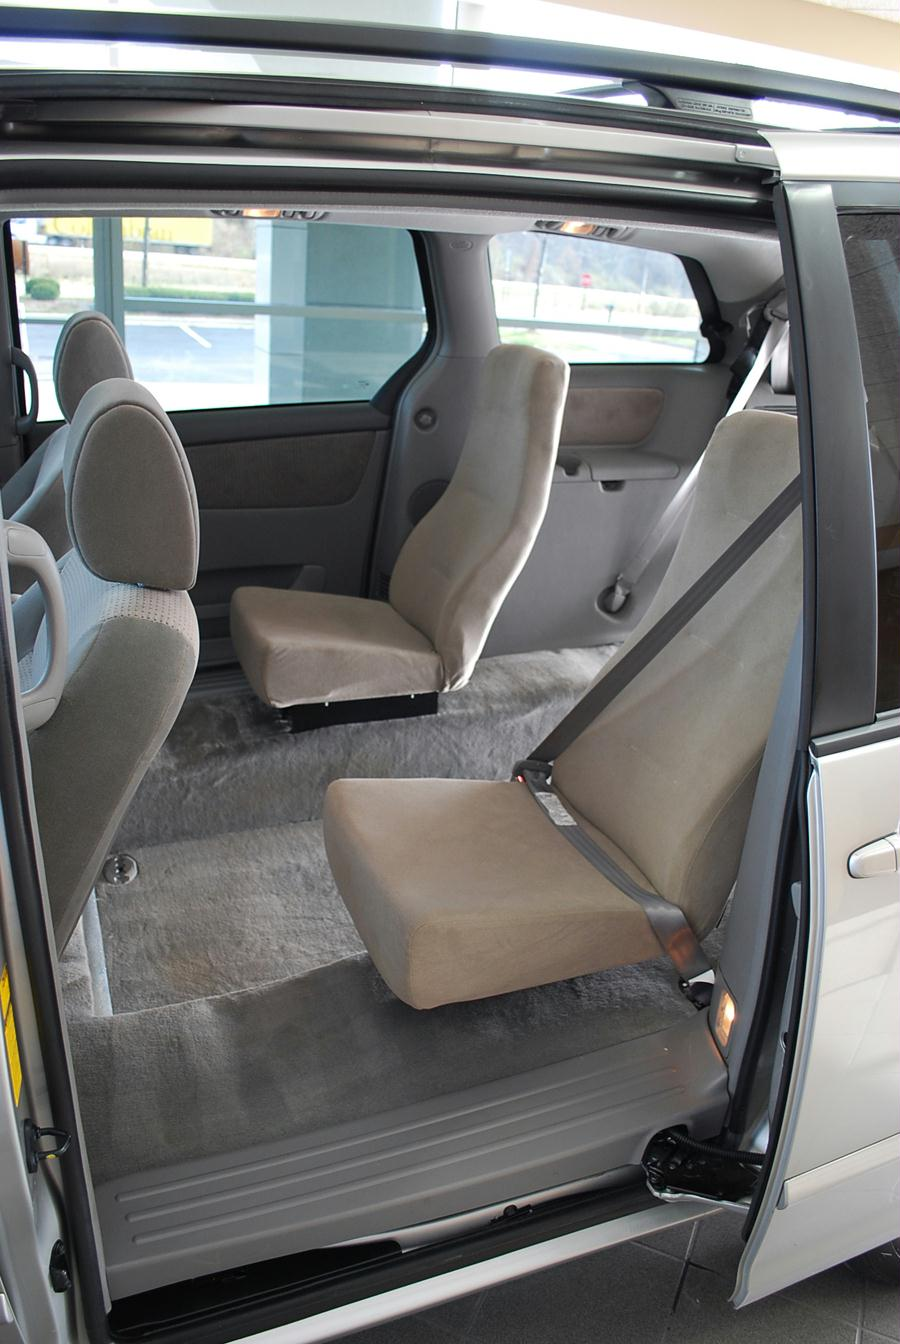 Used Vans For Sale Classifieds ® > Chevy, GMC, Toyota, Ford, Dodge